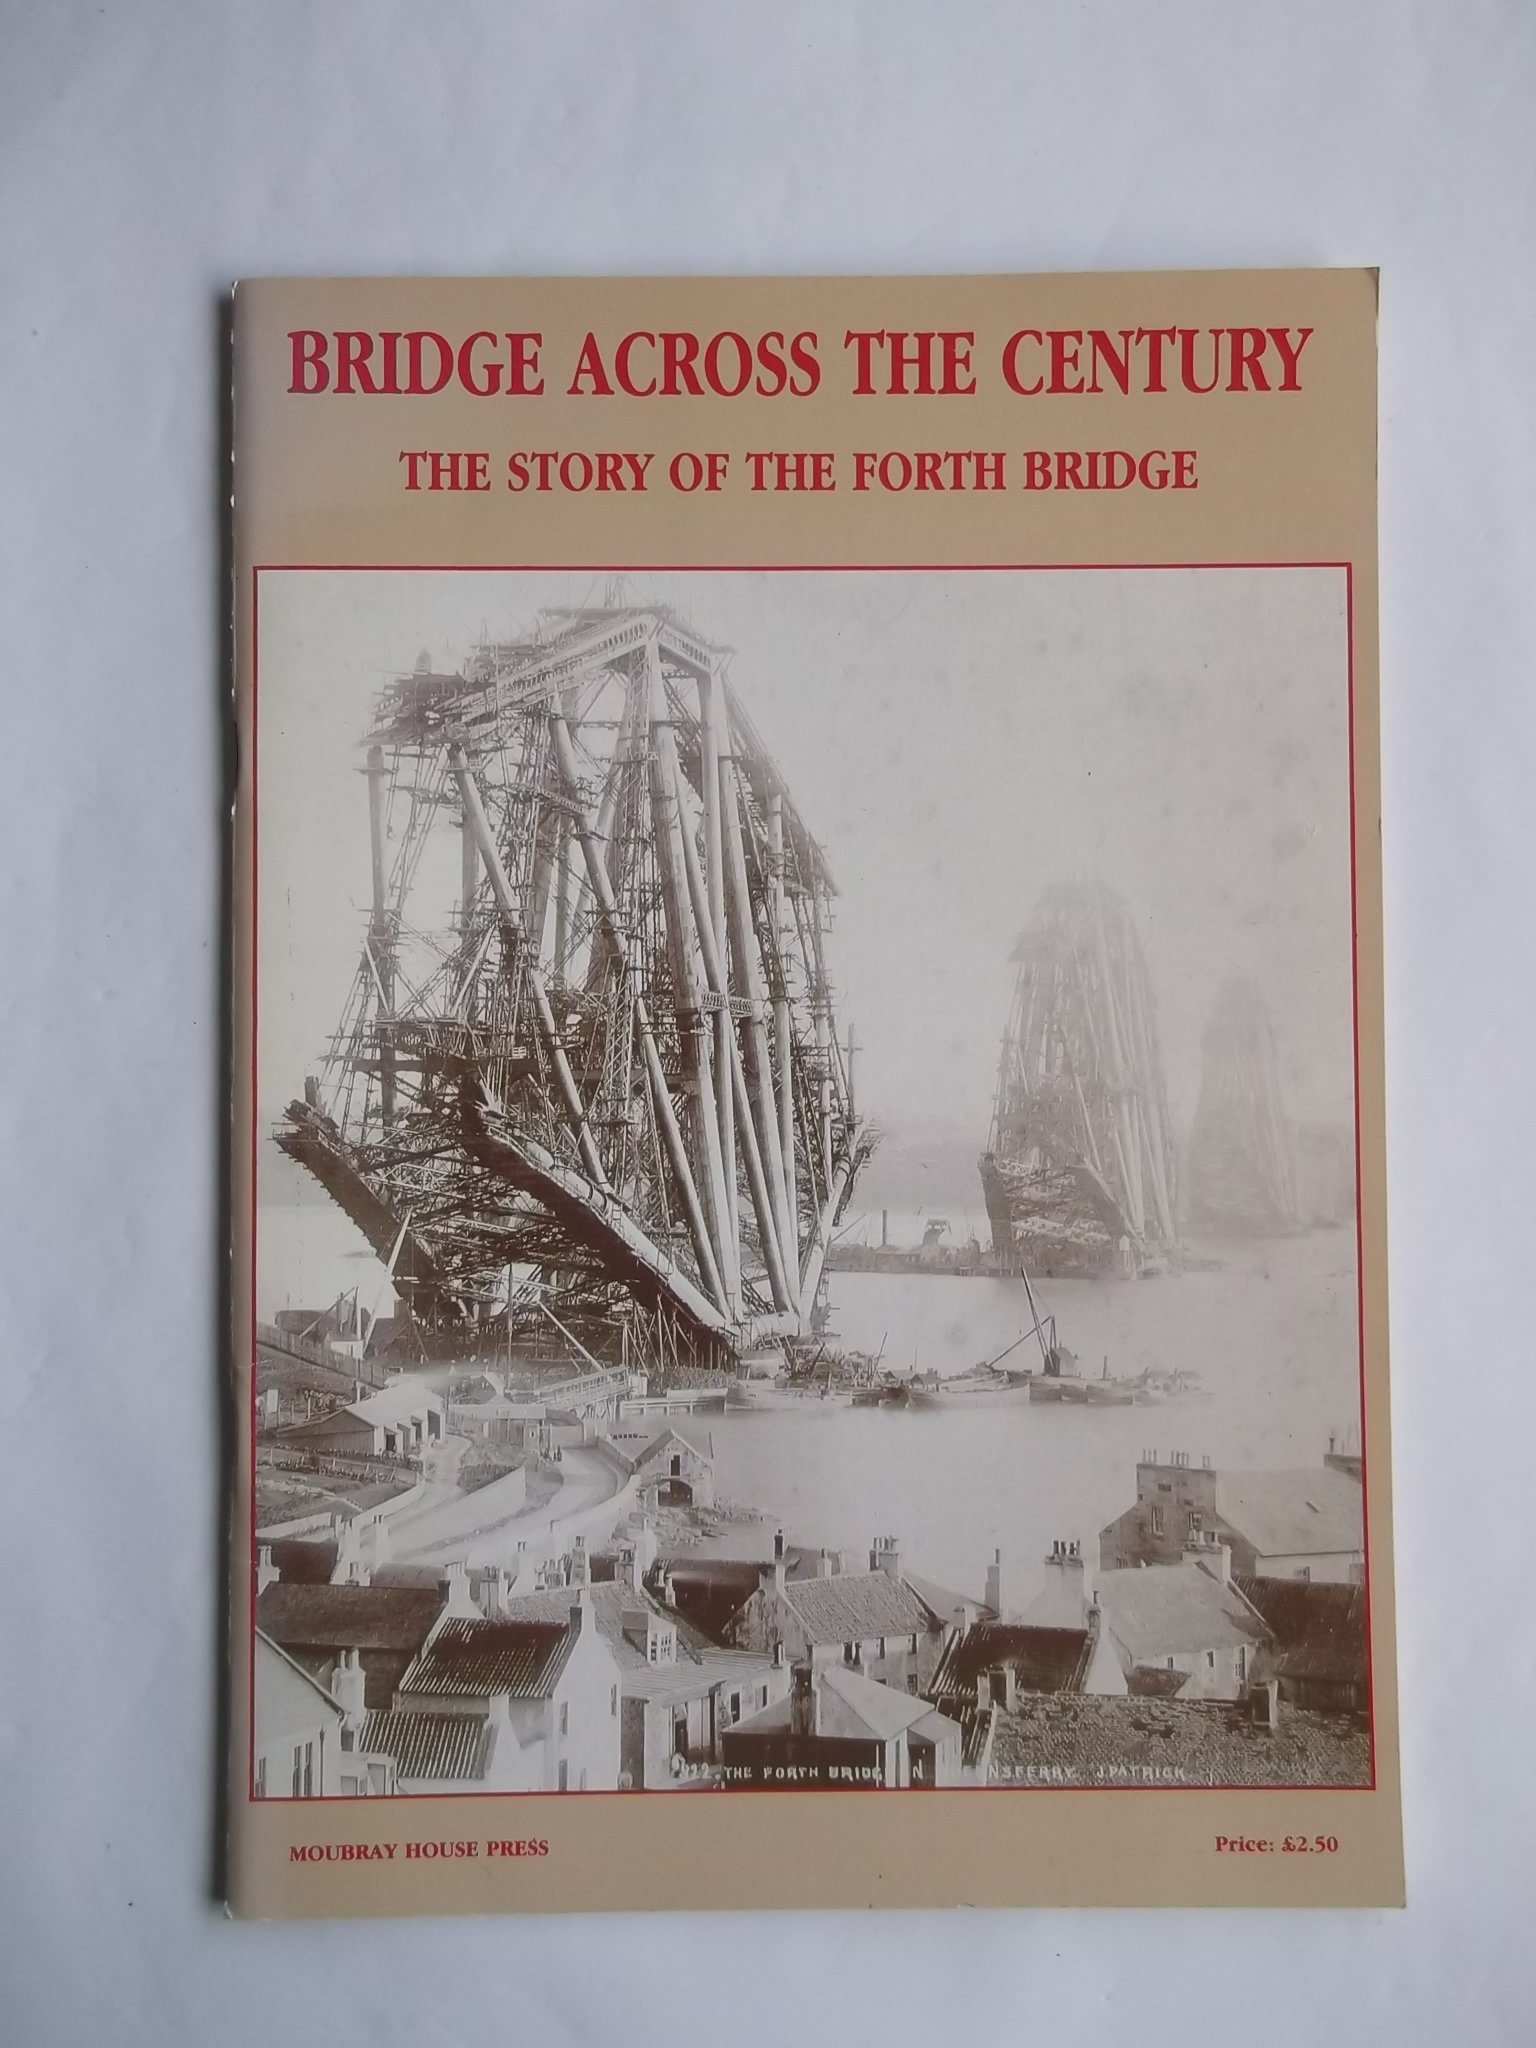 Bridge across the century : the story of the Forth Bridge.